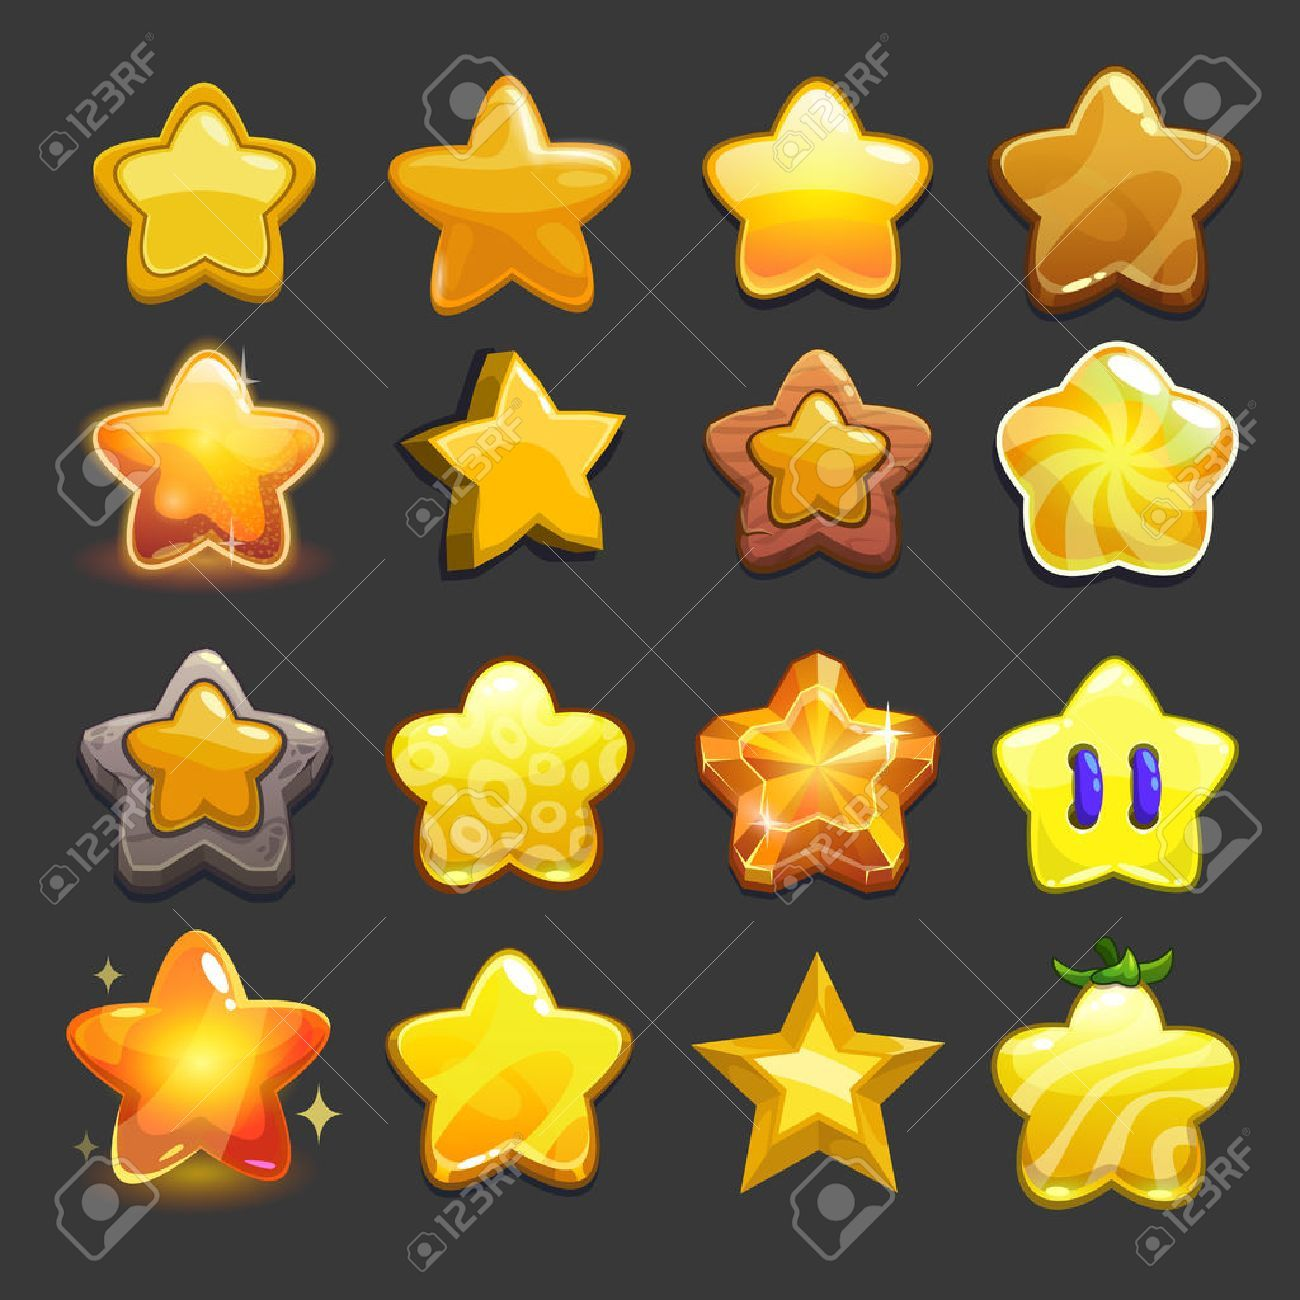 Cartoon vector star icons set, cool game assets collection for..